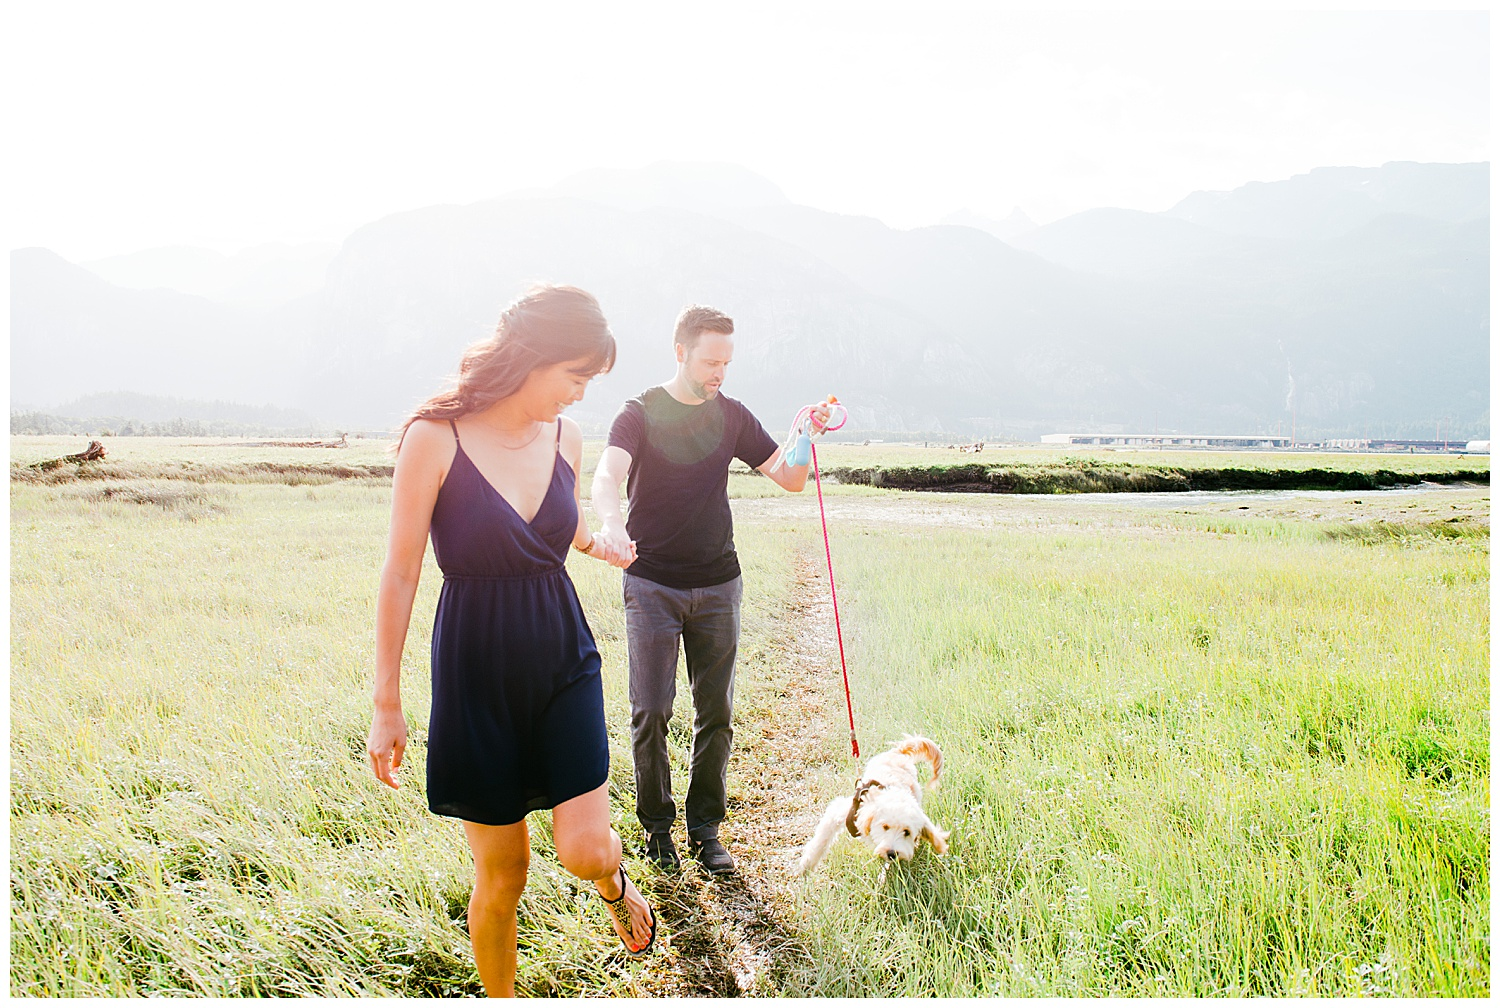 B.C.  Canada,British Columbia wedding photographer,Okanagan wedding photographer,Squamish B.C.,Squamish engagement,big open fields,chief stewamus,dog,garibaldi park,giggeling,grasslands,kelowna wedding photographer,laughing,light,maylies lang photography,mountain,puppy,summer,the pit squamish b.c.,vancouver enagement photographer,vancouver wedding photographer,vernon wedding photographer,wedding photographer,